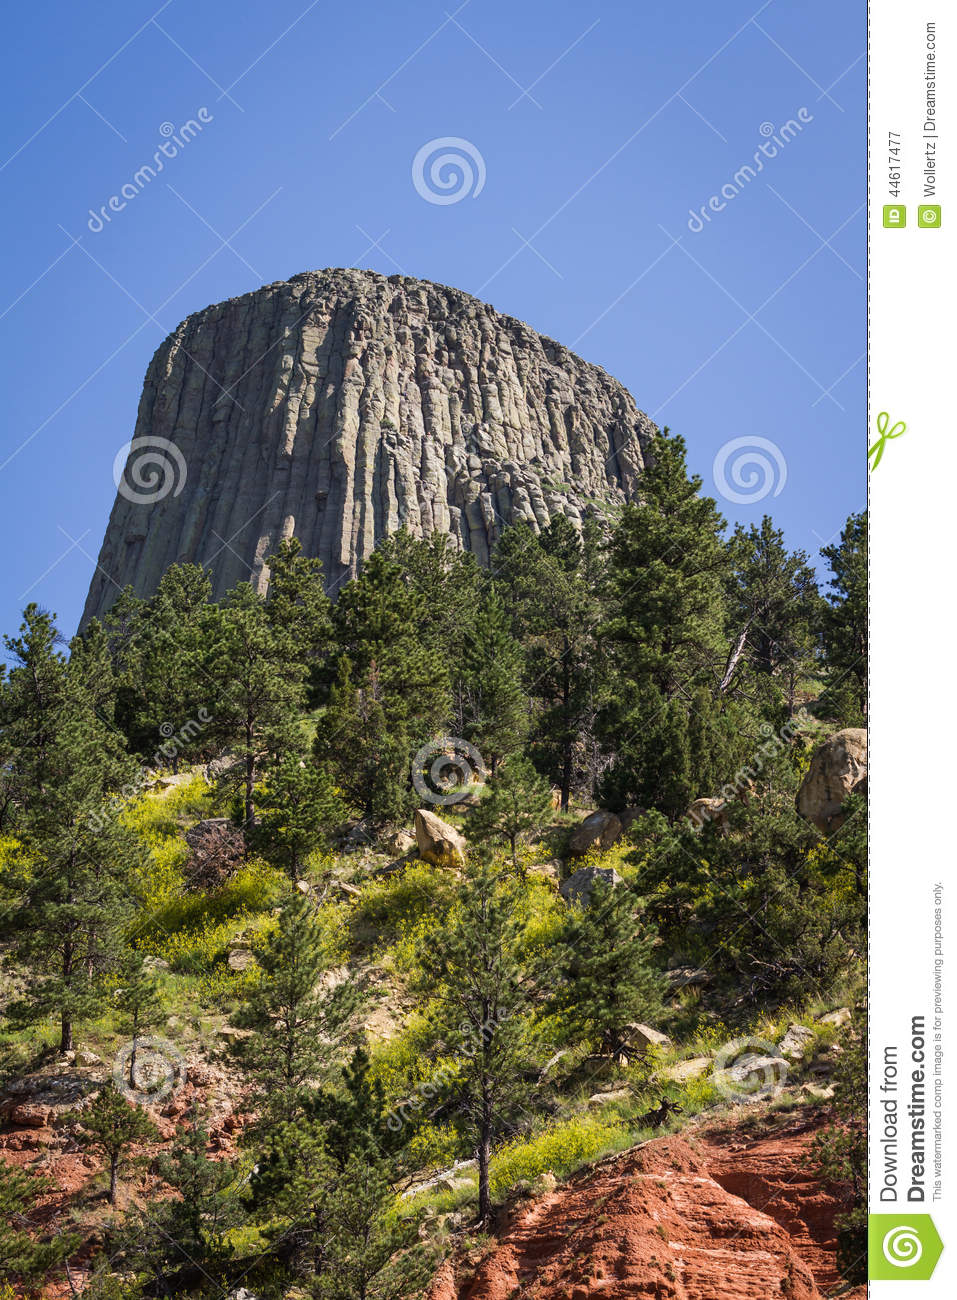 devils tower online dating Our online travel partners don't provide prices for this accommodation but we can search other options in devils tower.